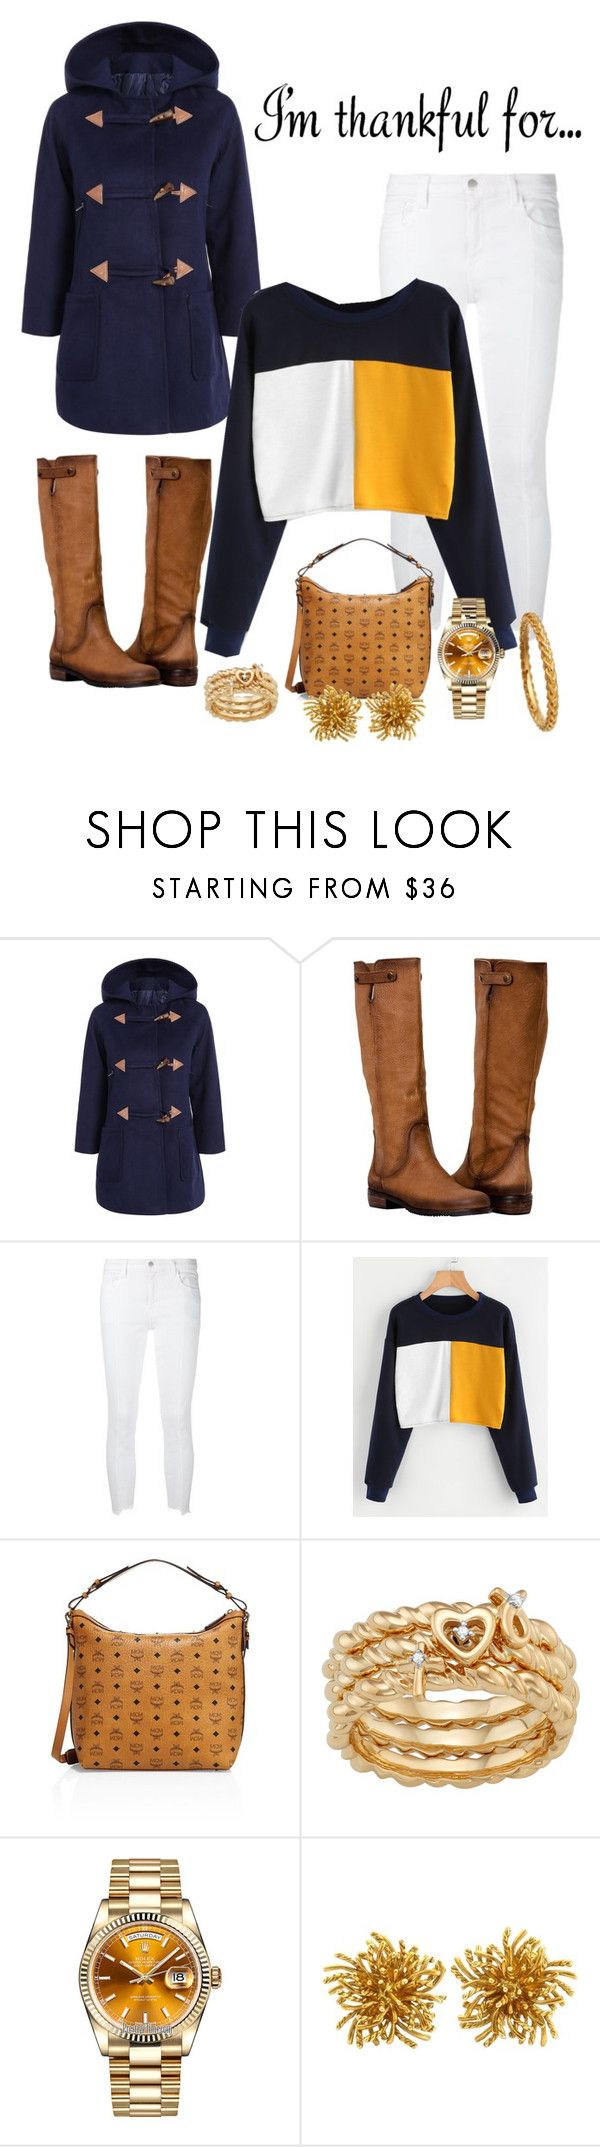 """Thank :;: FUL ;;;"" by ebony320 ❤ liked on Polyvore featuring J Brand, MCM, Rolex, Tiffany & Co. and Astley Clarke"